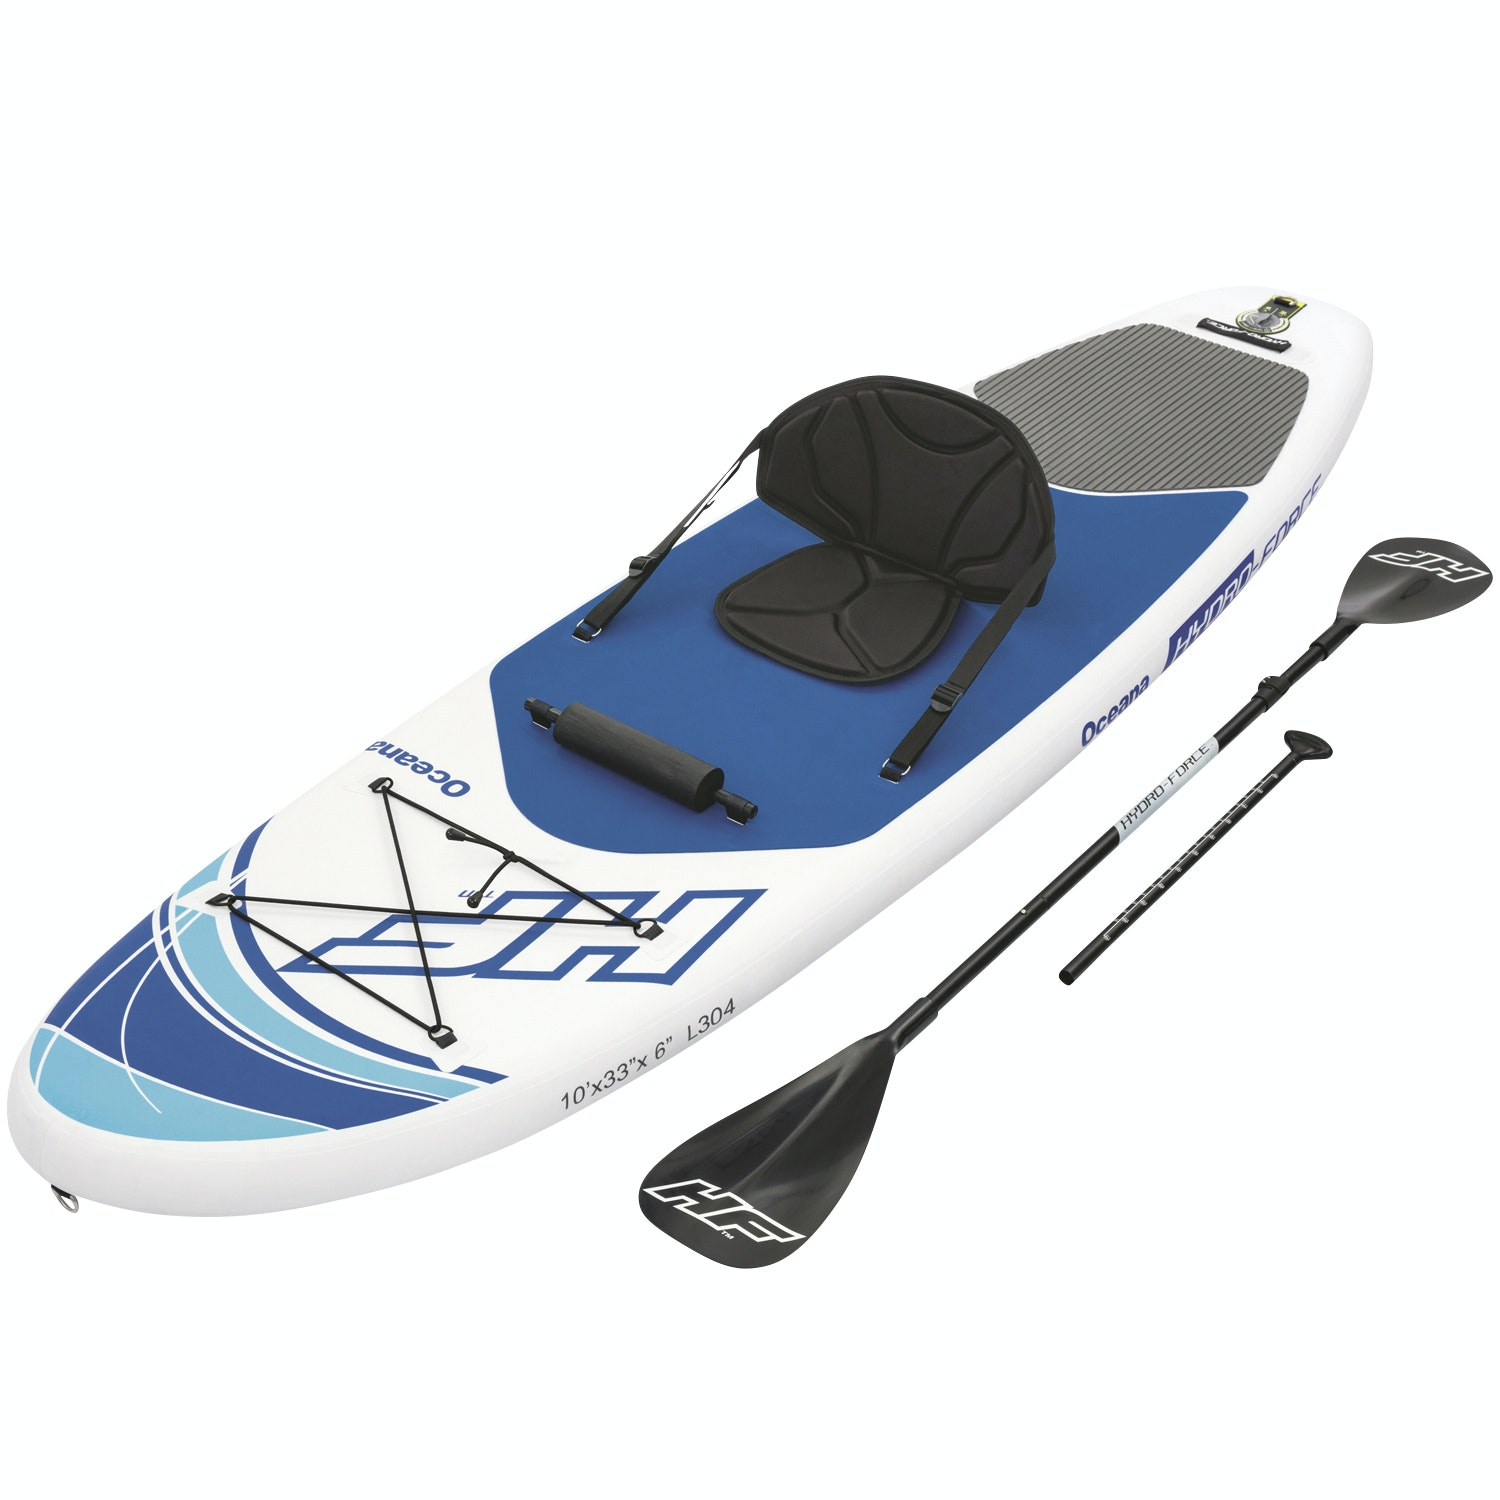 Paddleboard Bestway Hydro-Force Oceana 3,05mx84cmx15cm